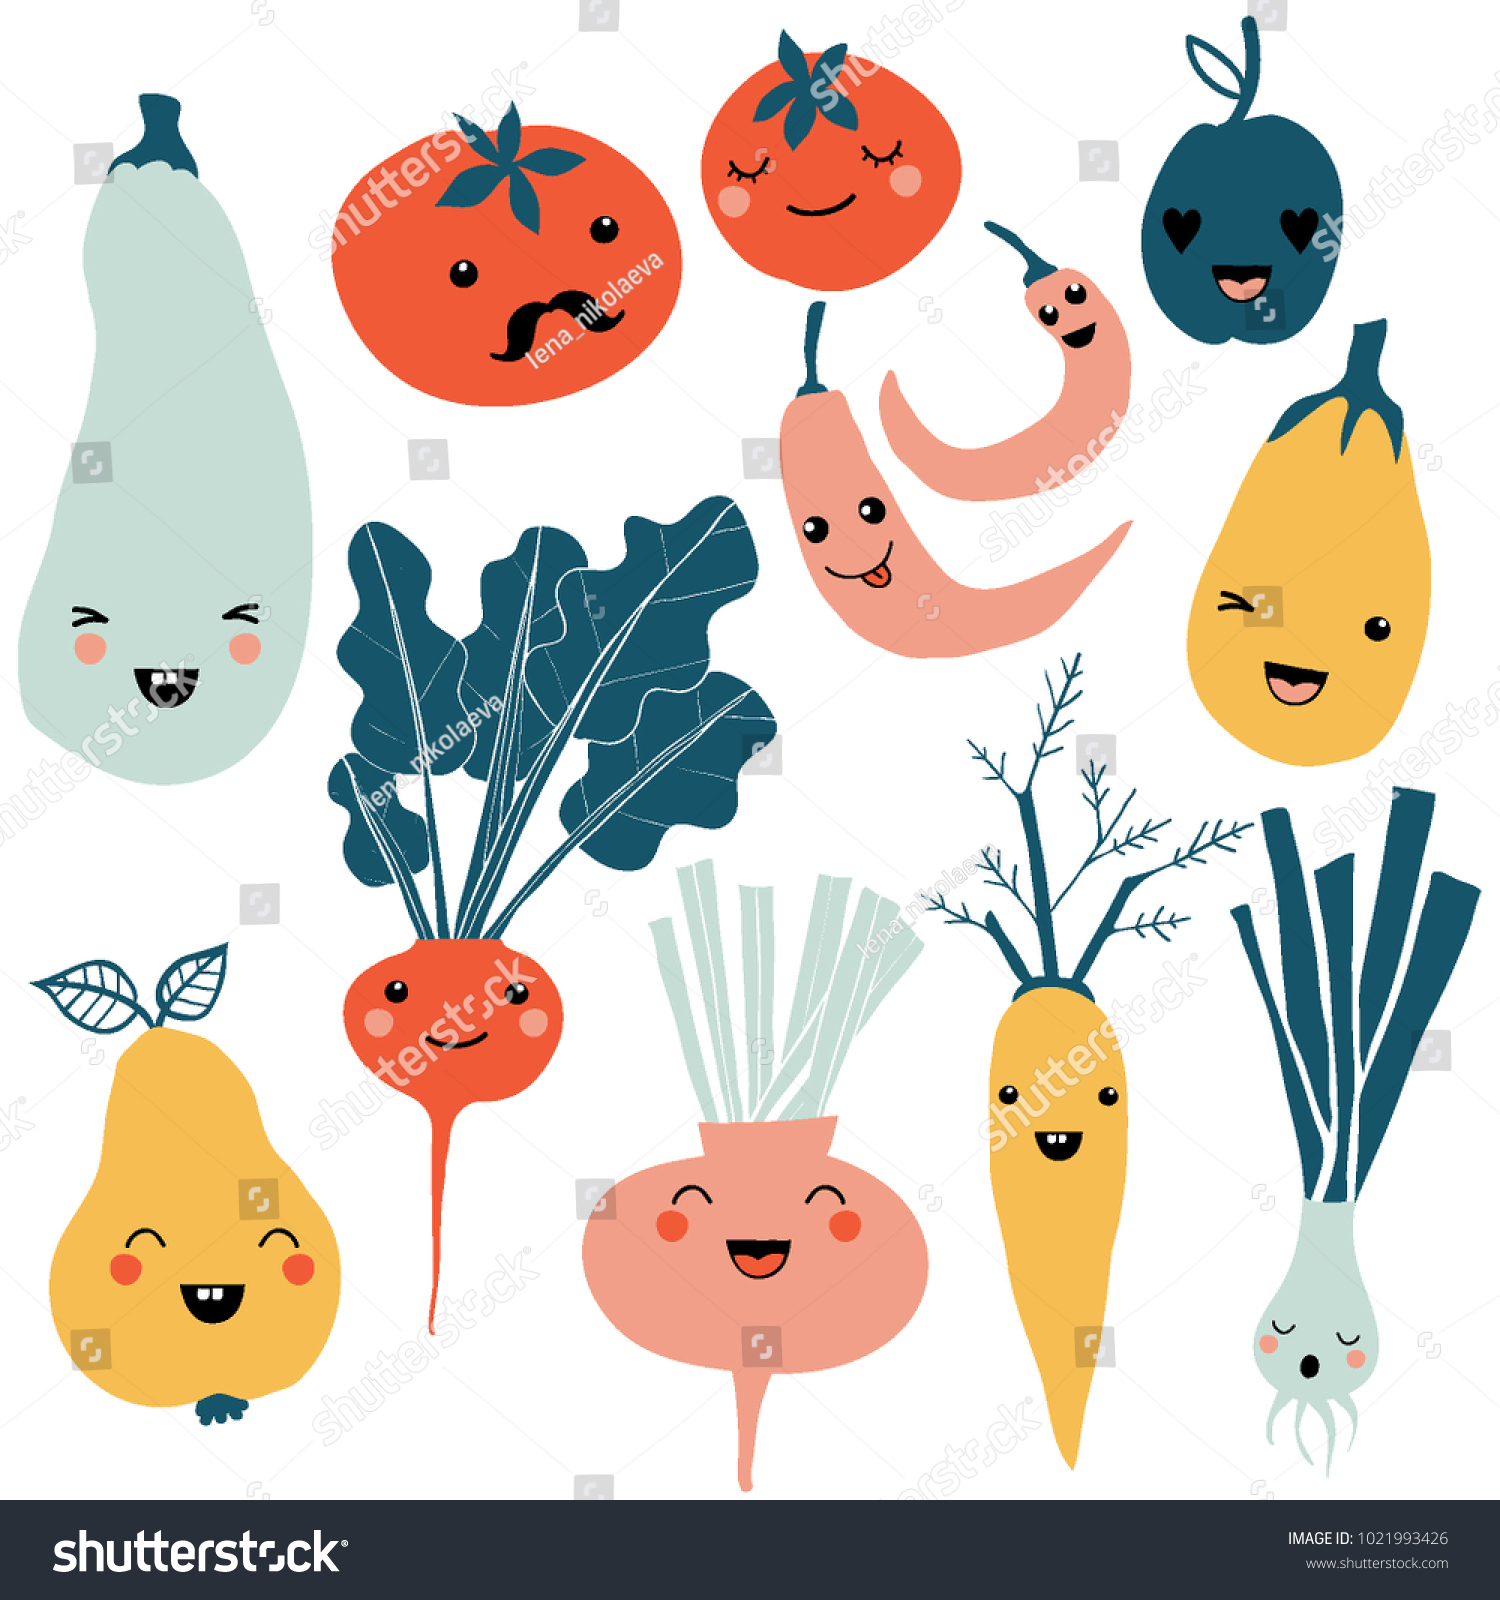 Cute cartoon smiley fruit and vegetable characters. Flat icons set: pepper, carrot, tomato, pear, onion. Colorful design for cards, banners, printed materials. Cute doodle style emoticons. #1021993426